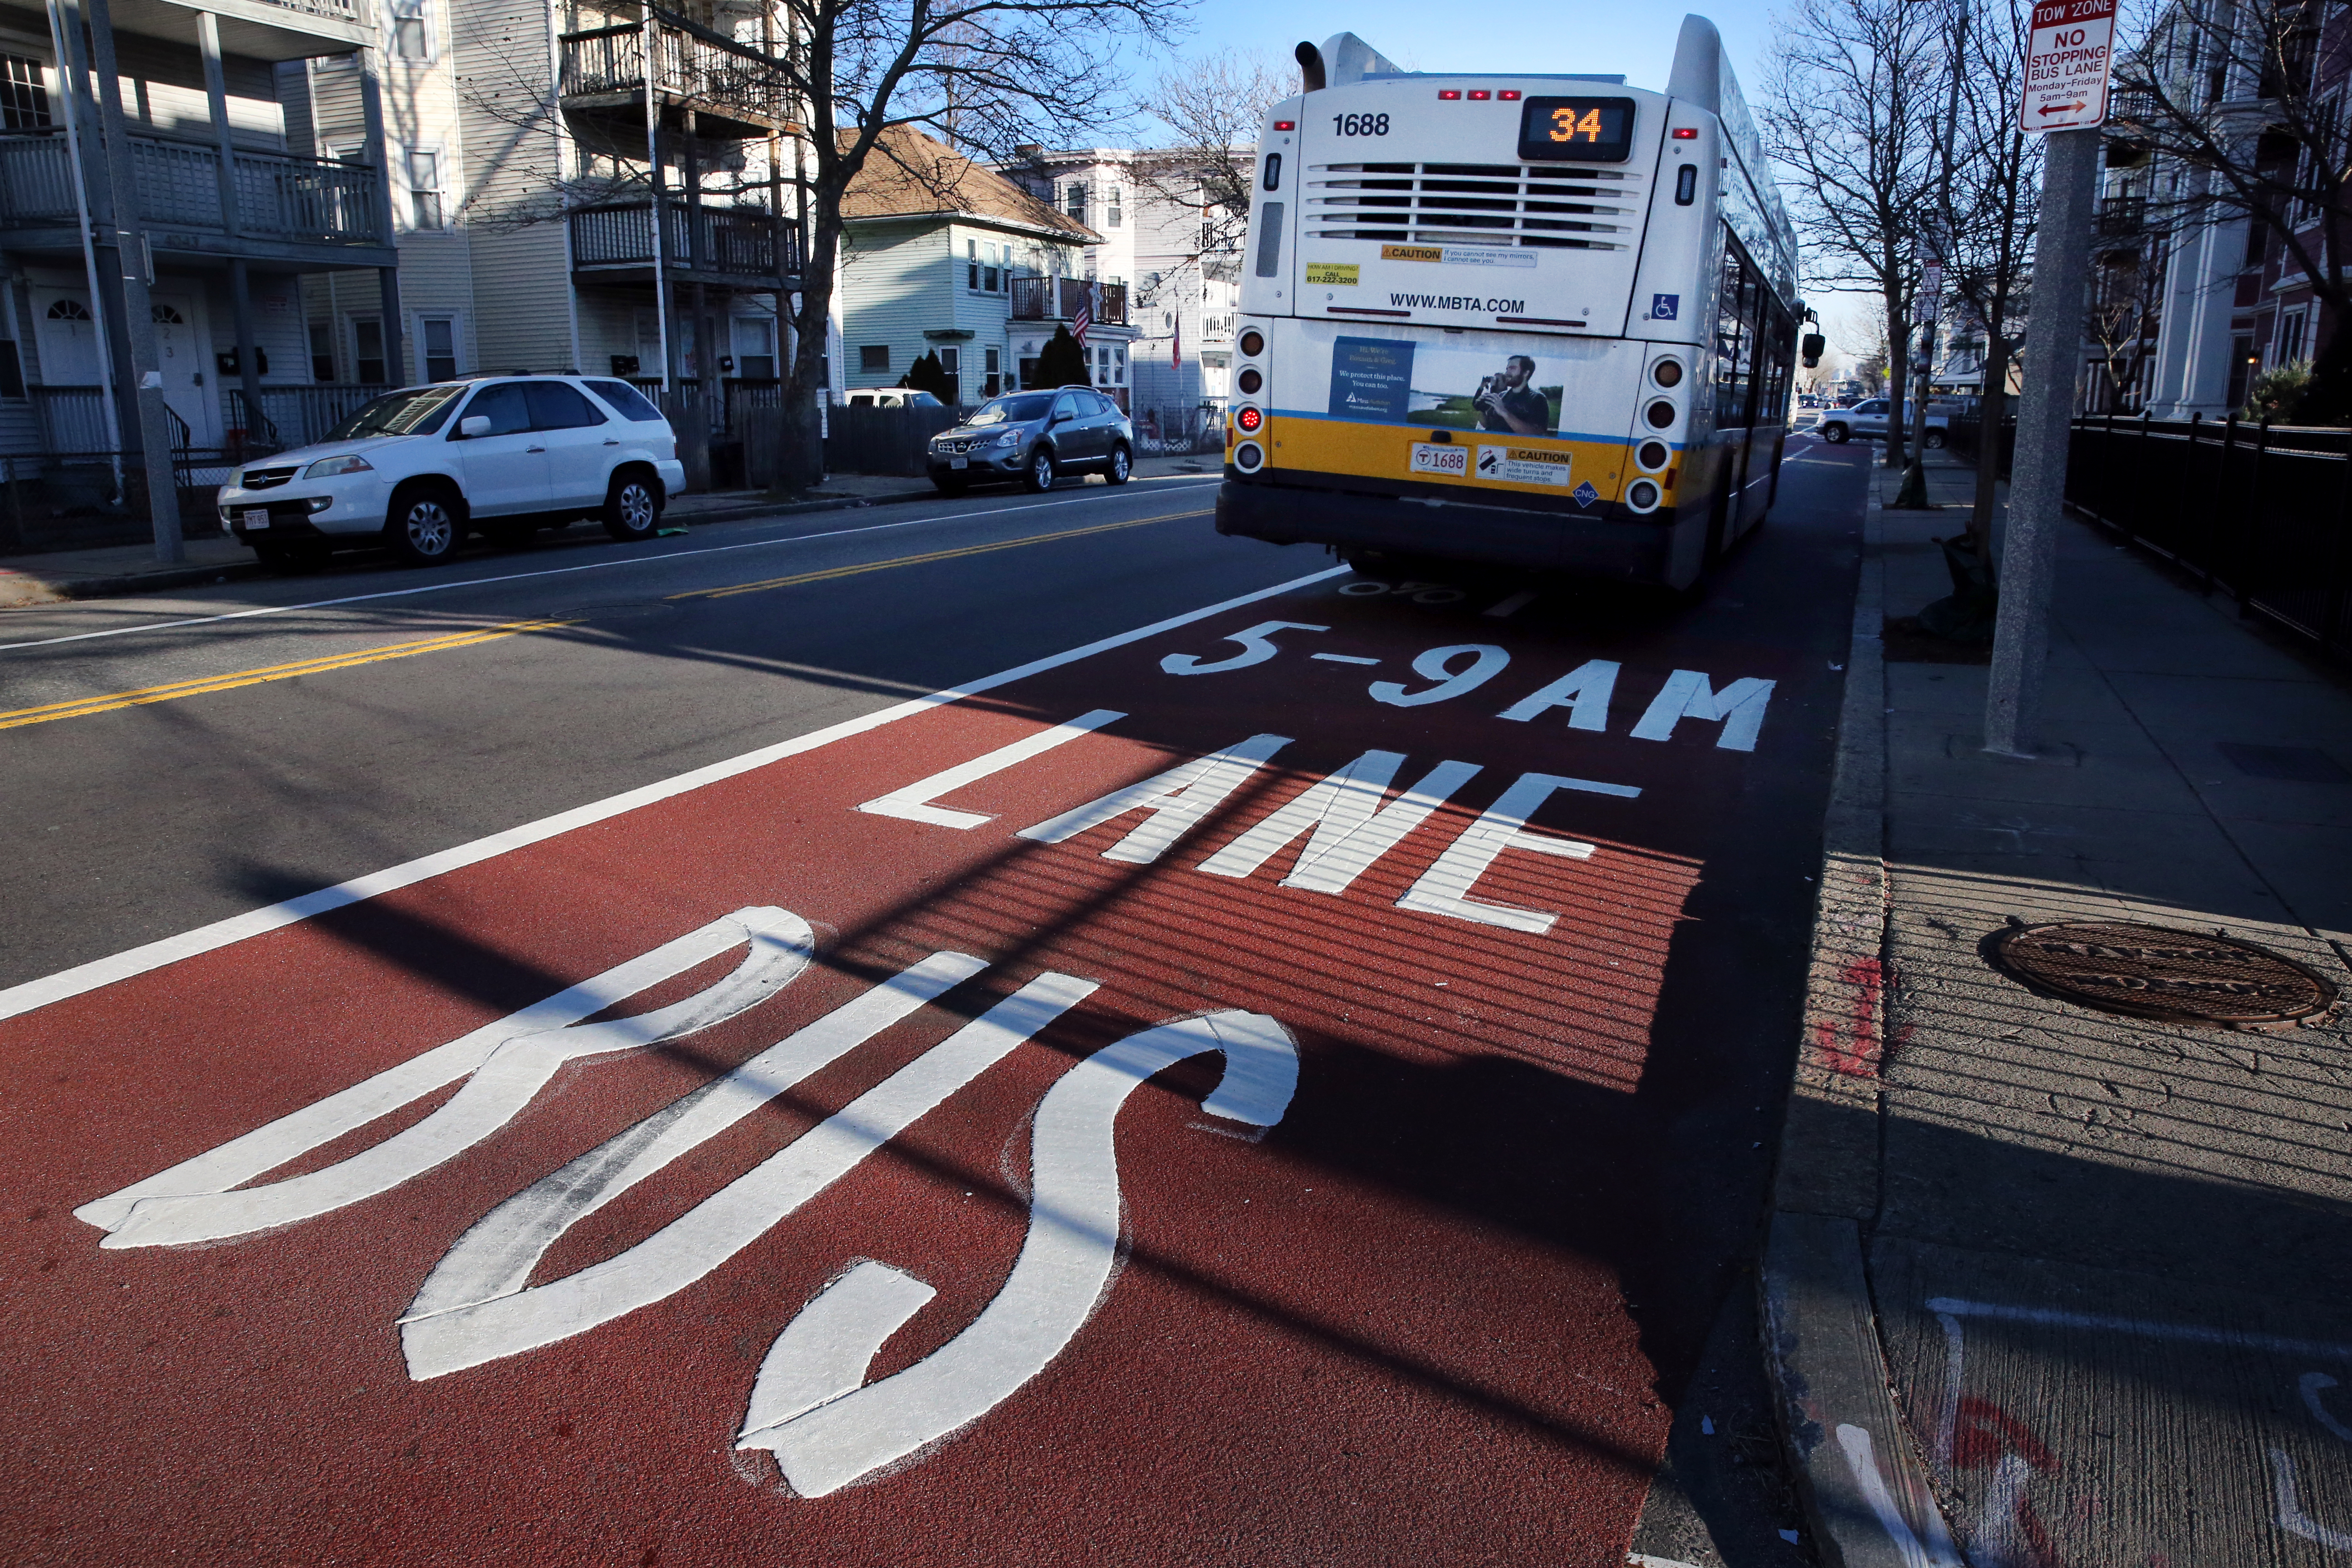 Boston's new bus-only lanes are an improvement  But who will pay for